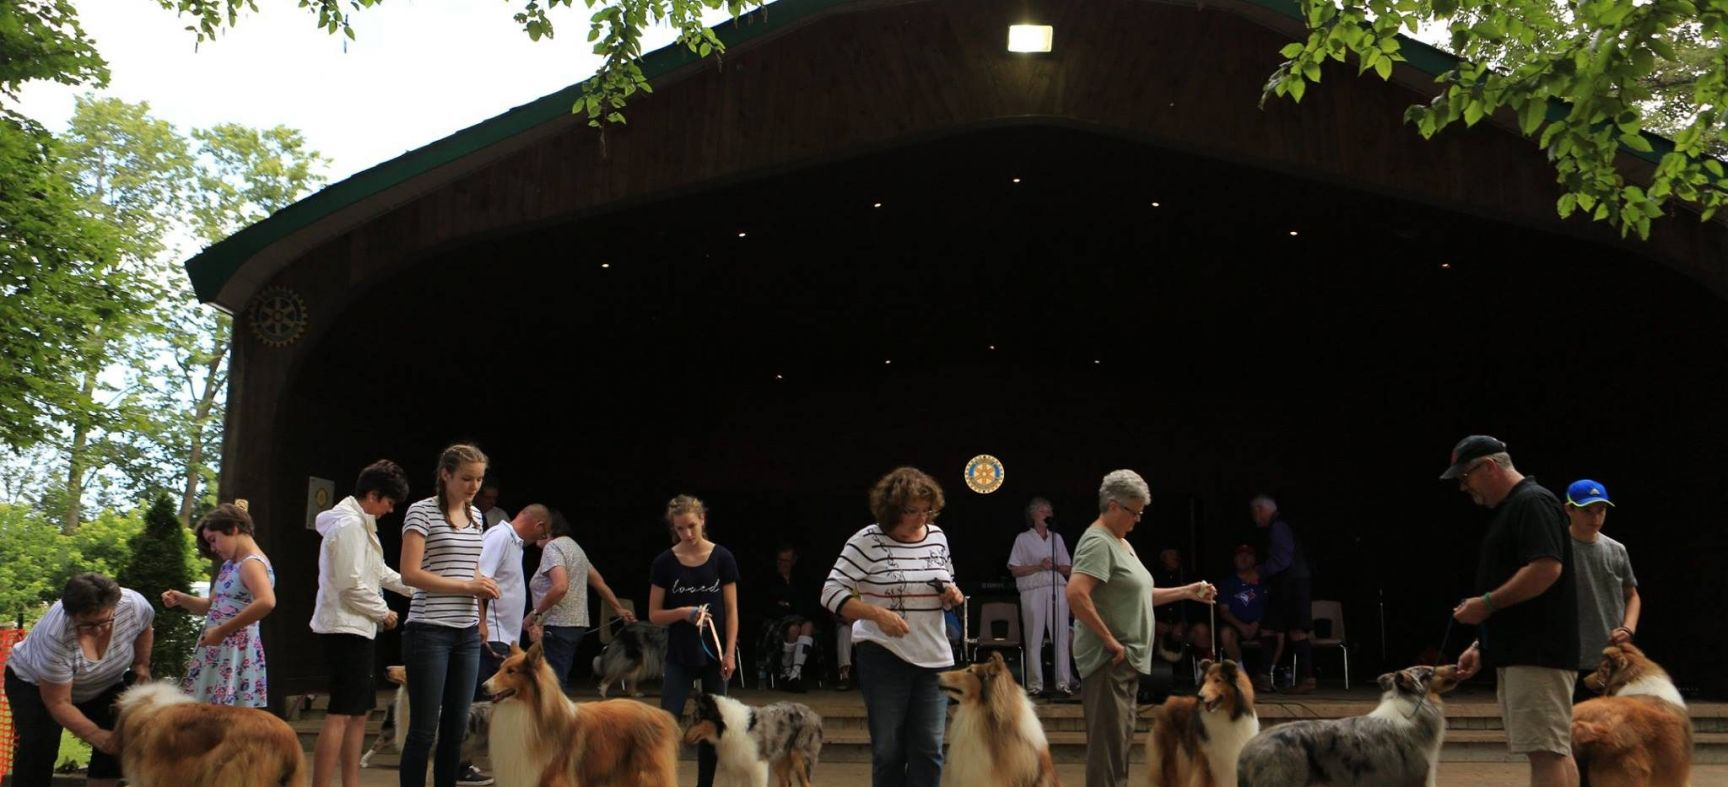 Dog Show. John Cavers Photography